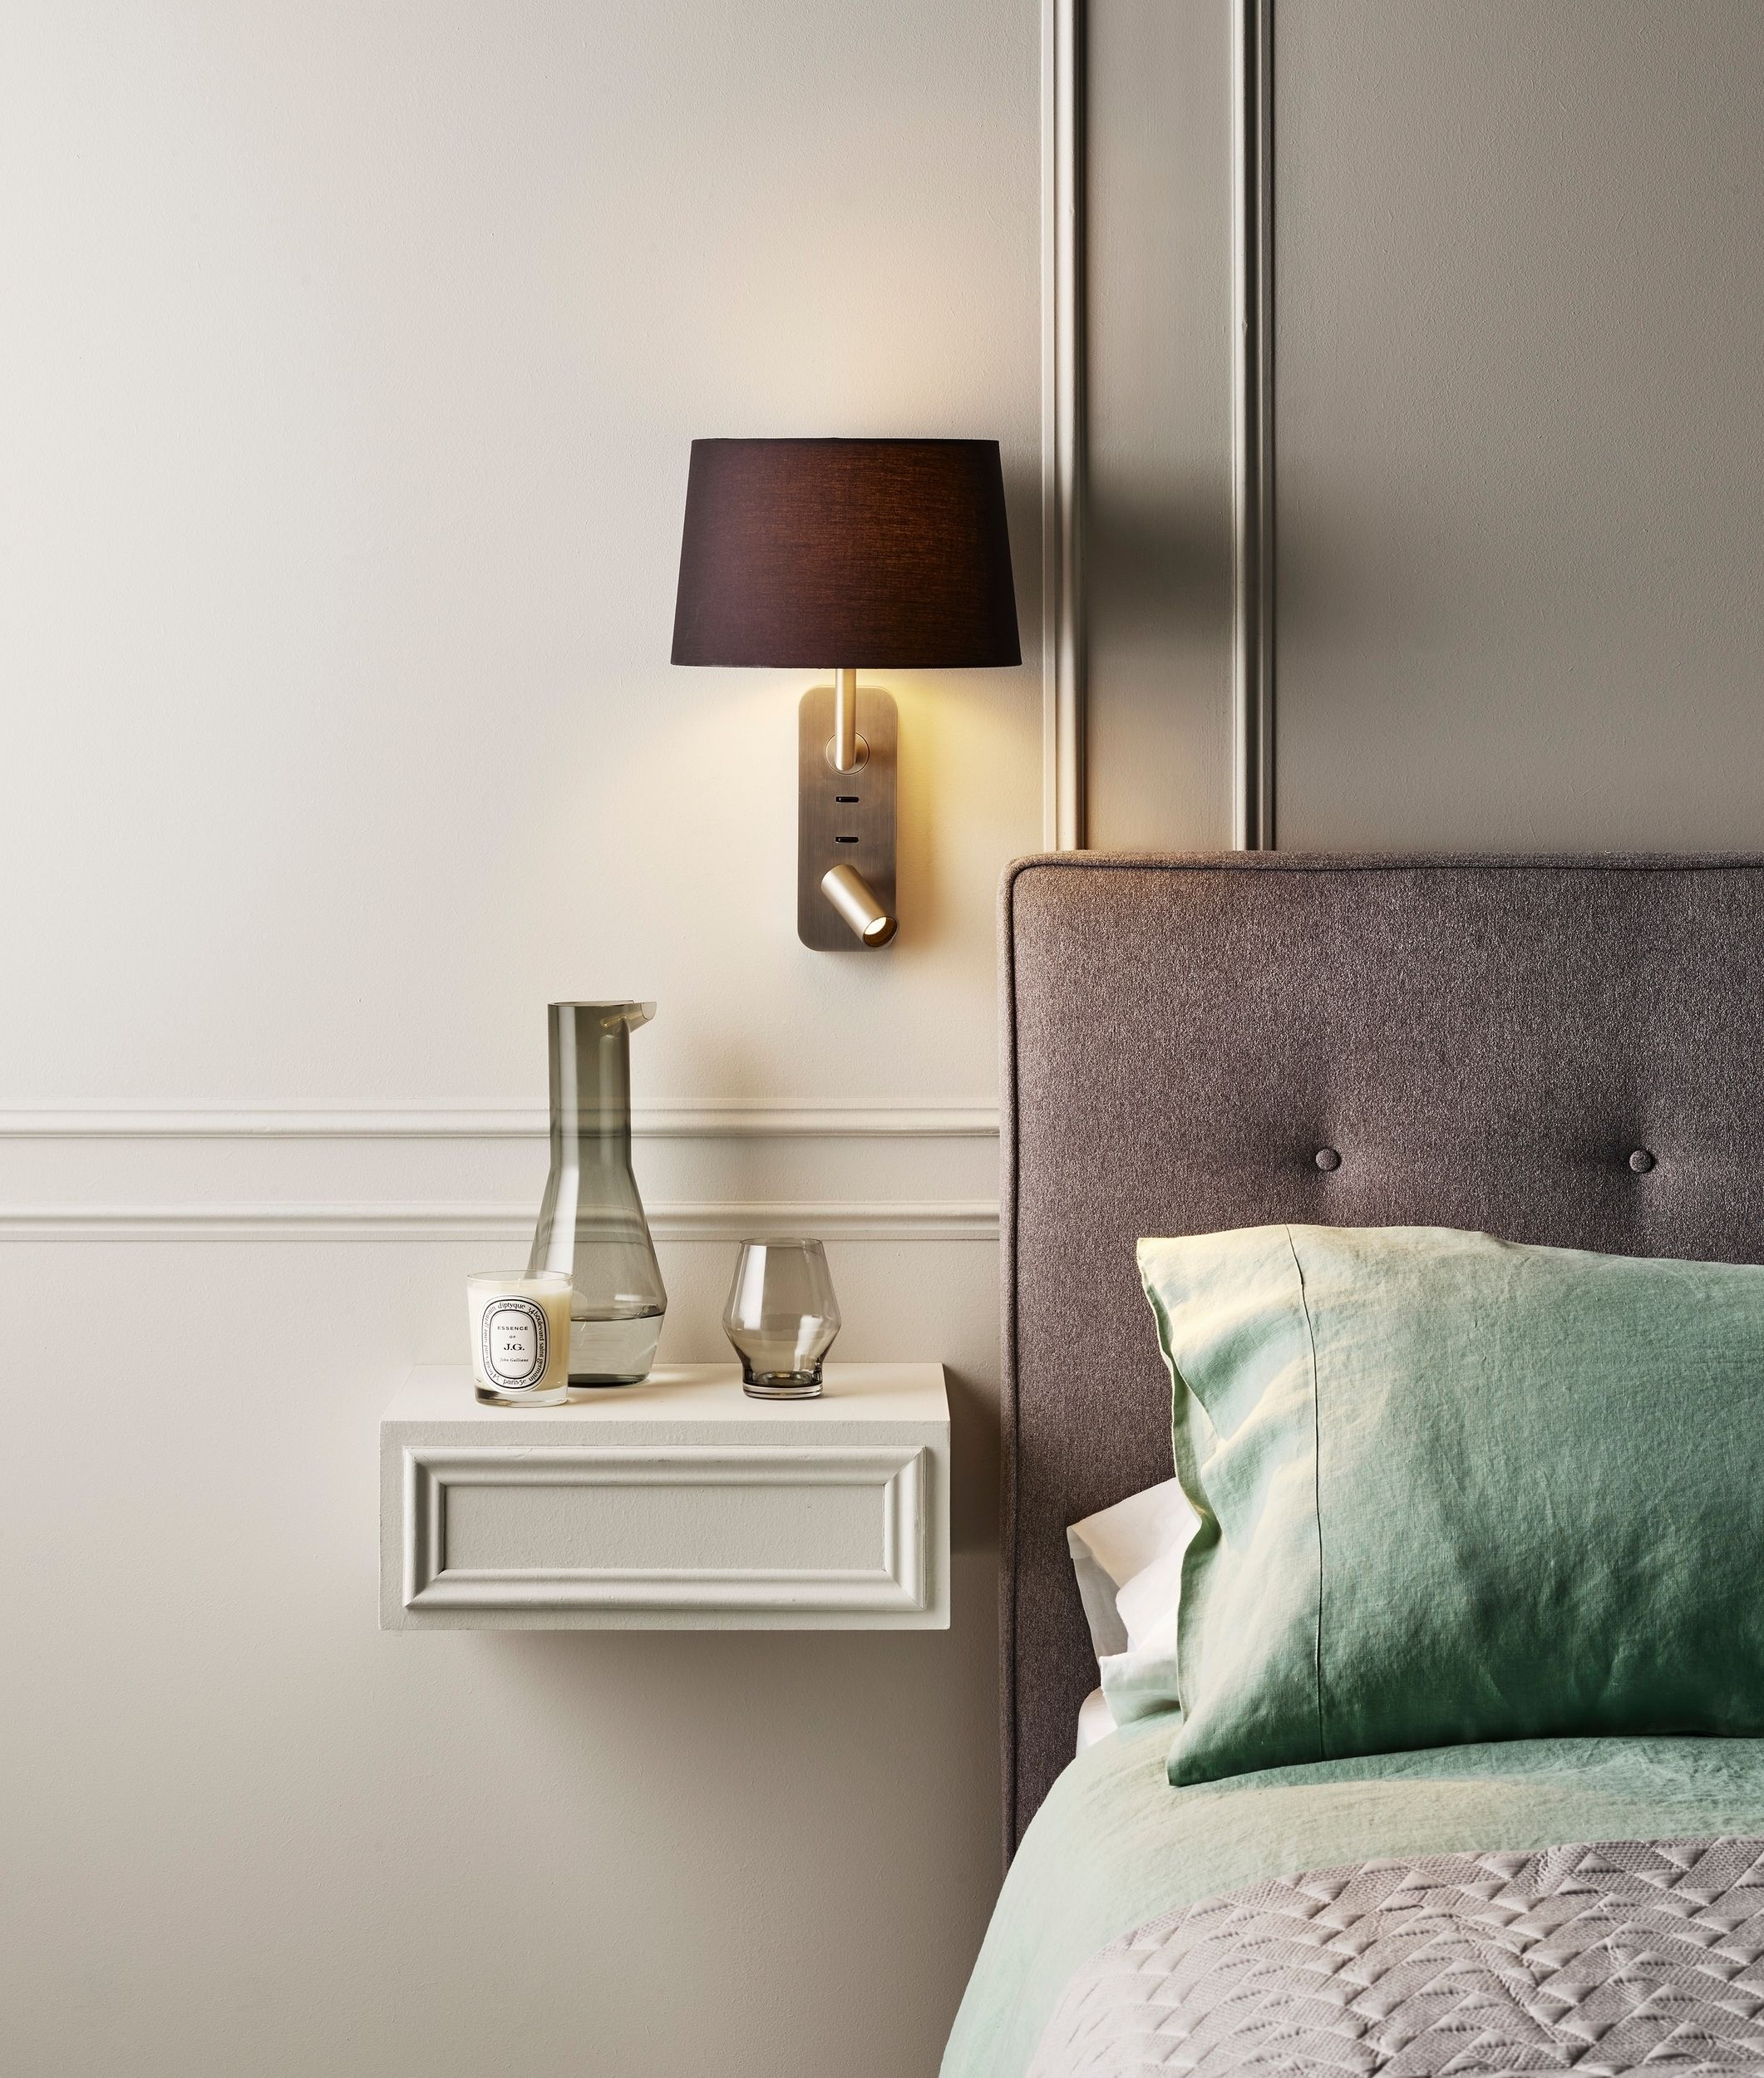 Bedroom Enchanting Wall Reading Lamps Bedroom Ideas Wall Light Bedroom Wall Reading La Wall Mounted Reading Lights Reading Lamp Bedroom Wall Lamps With Cord